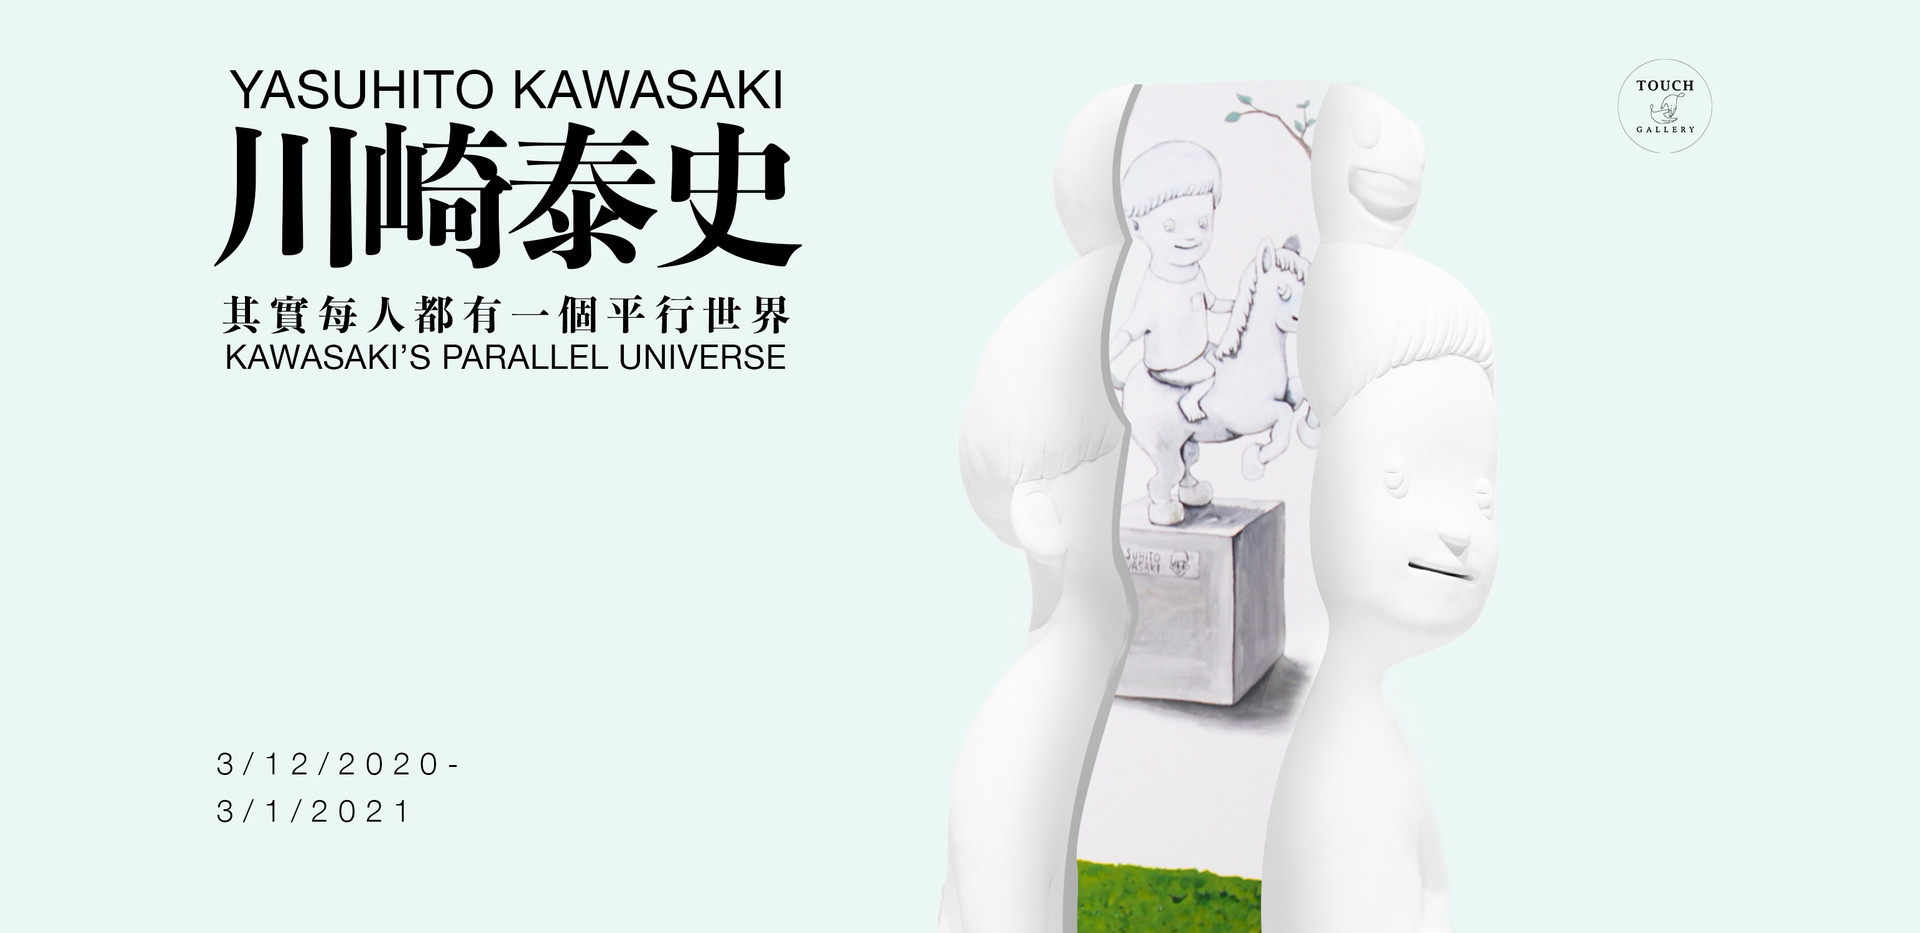 Kawasaki exhibition facebook banner1.jpg